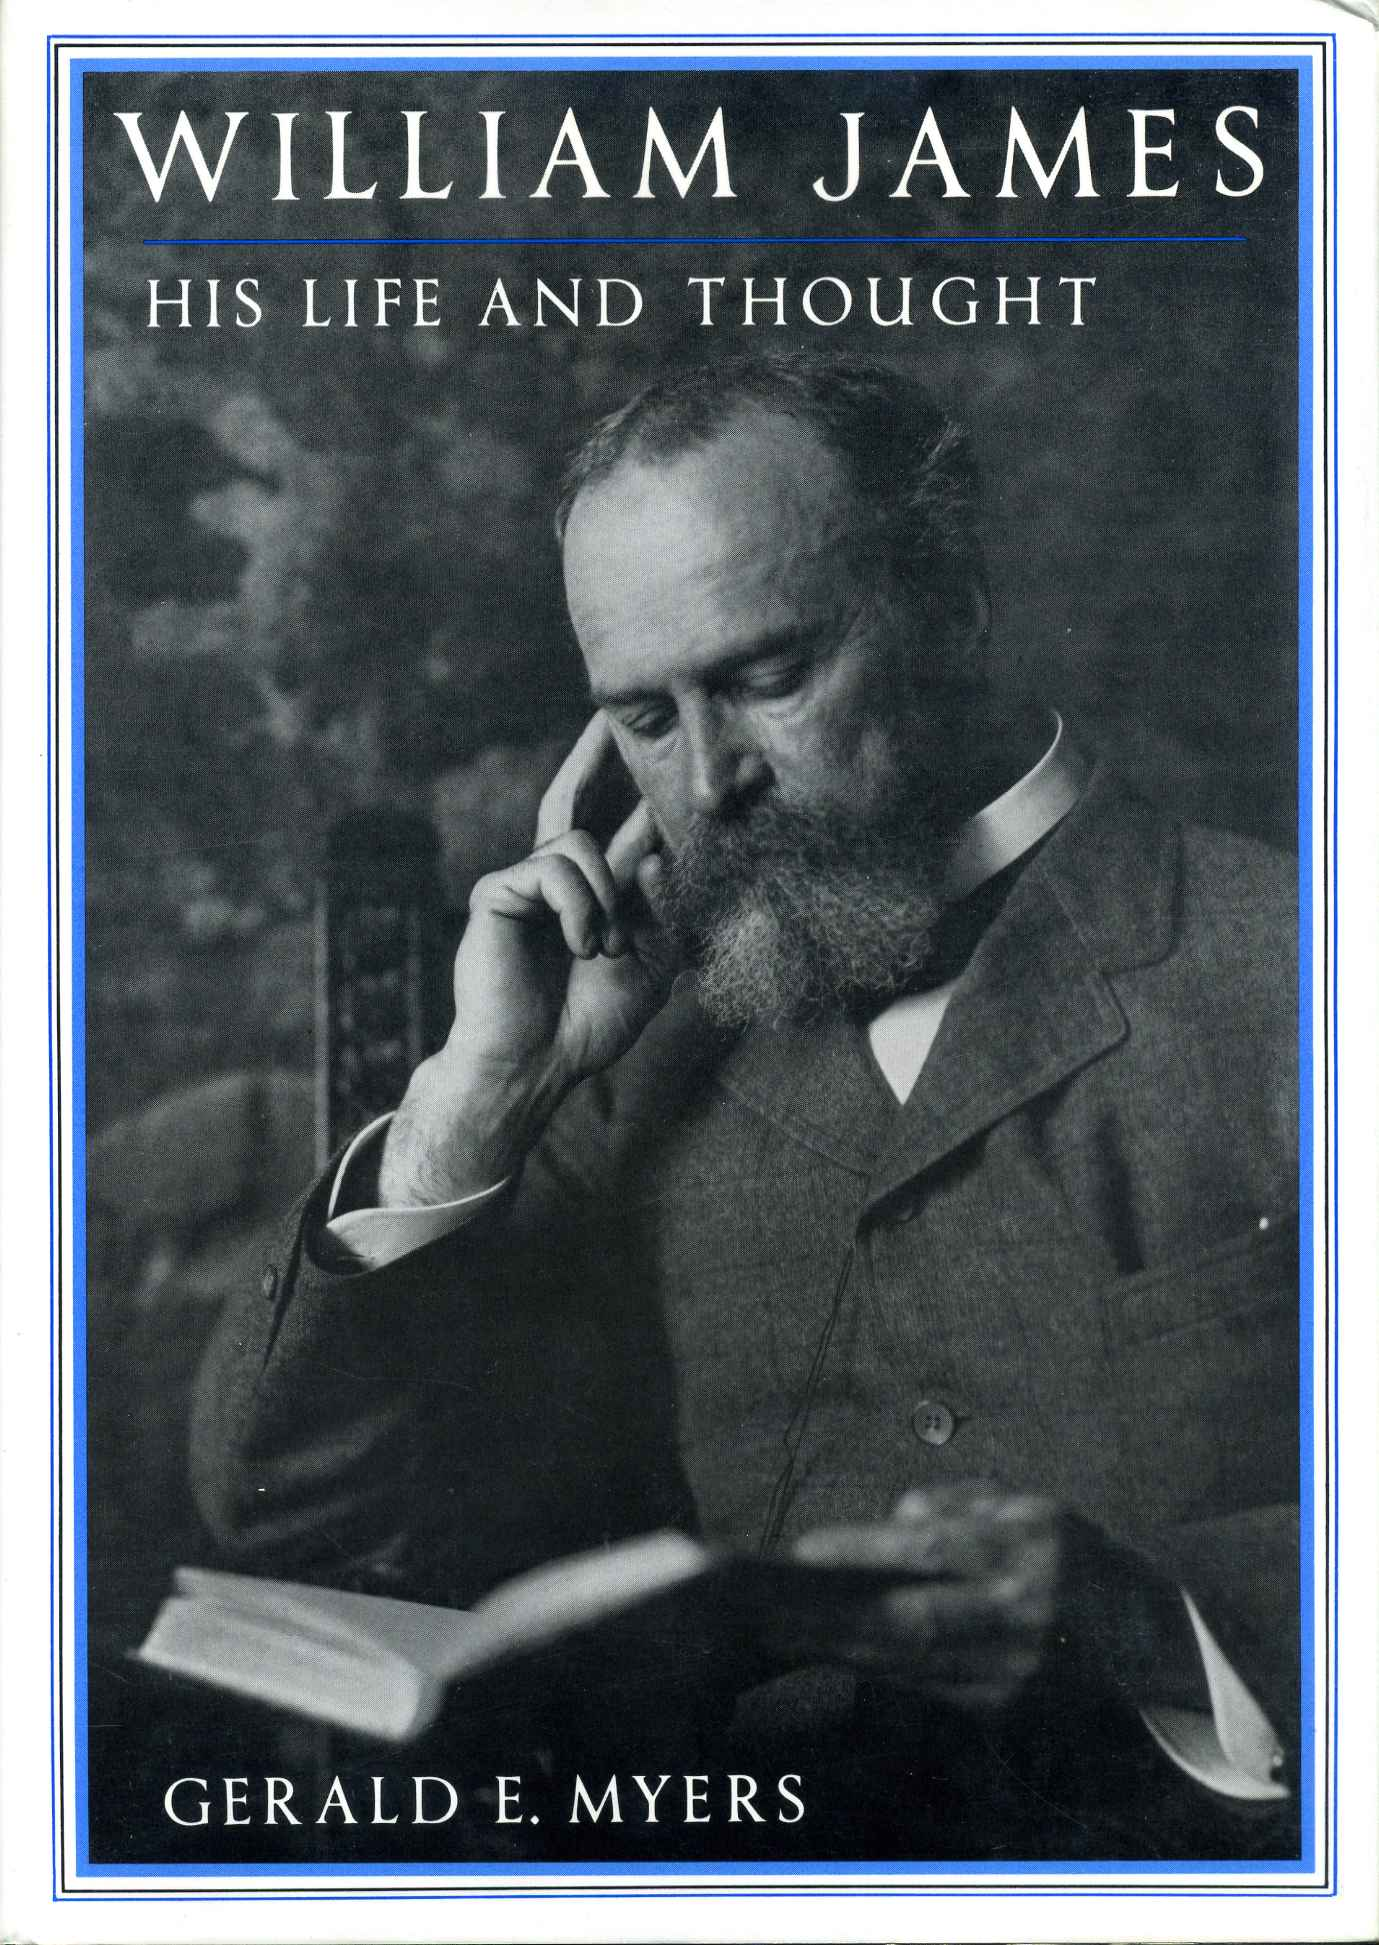 William James, His Life and Thought.